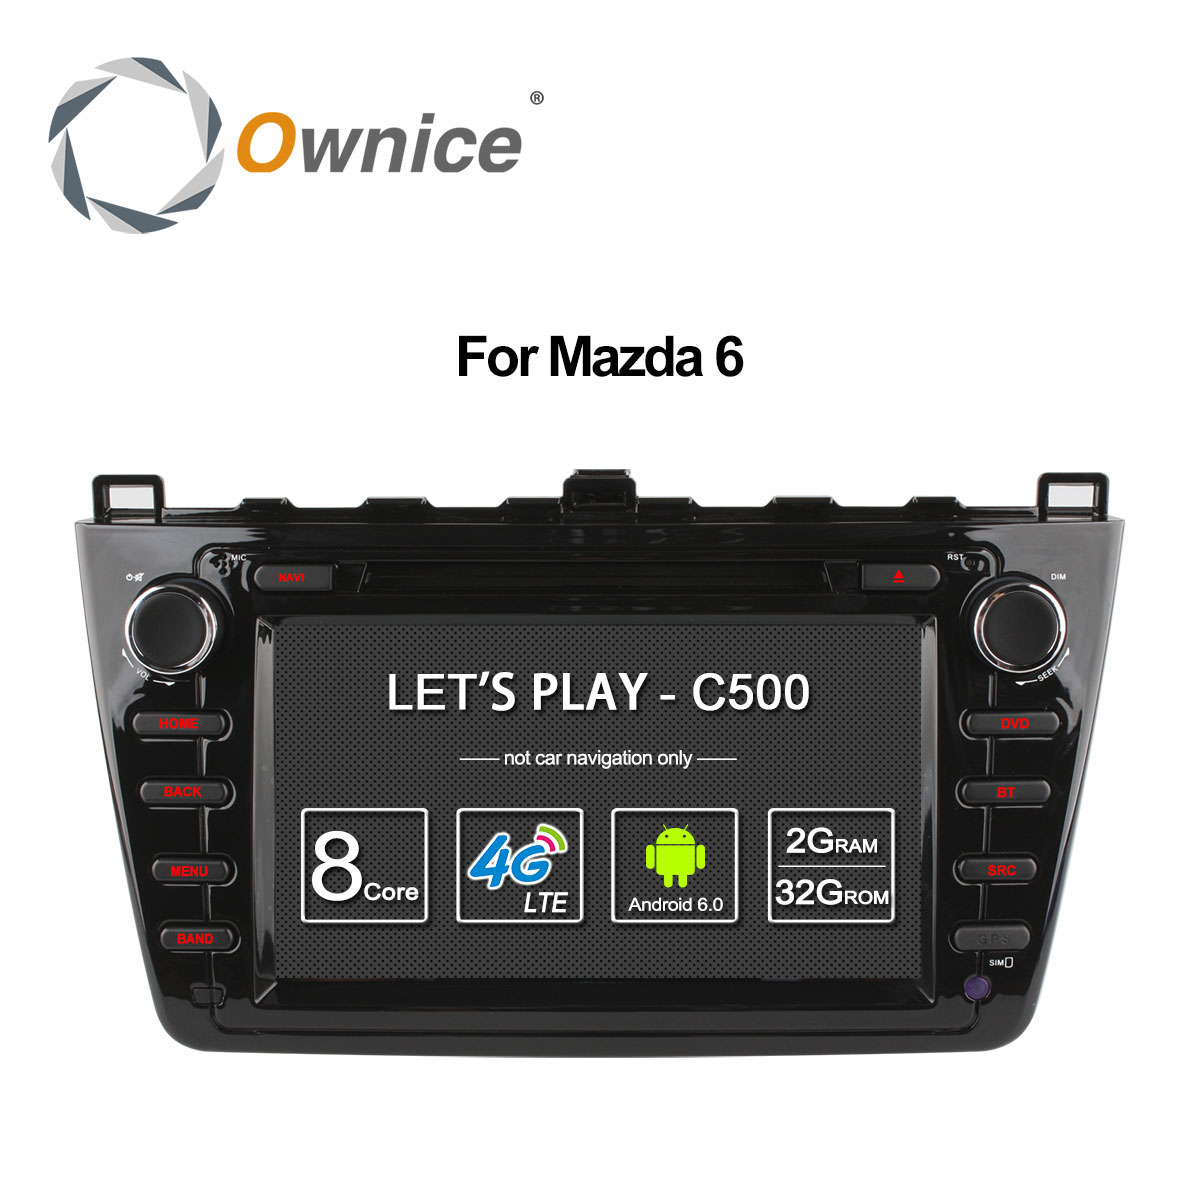 Ownice C500 Octa Core Android 6 0 car dvd gps For Mazda 6 Ruiyi Ultra 2008 aliexpress com buy ownice c500 octa core android 6 0 car dvd gps  at readyjetset.co